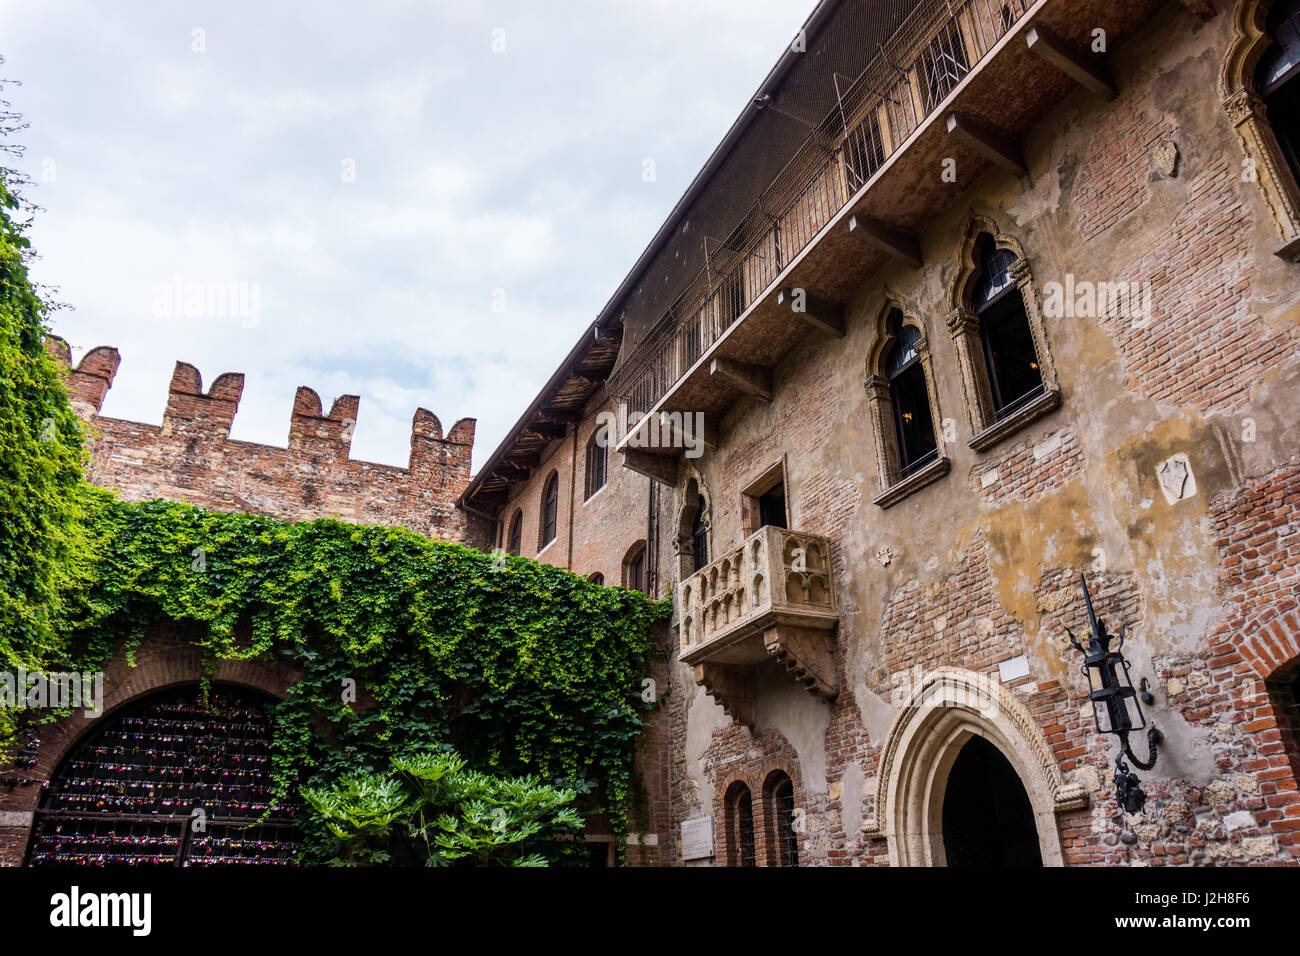 The famous balcony of romeo and juliet in verona italy for Famous balcony